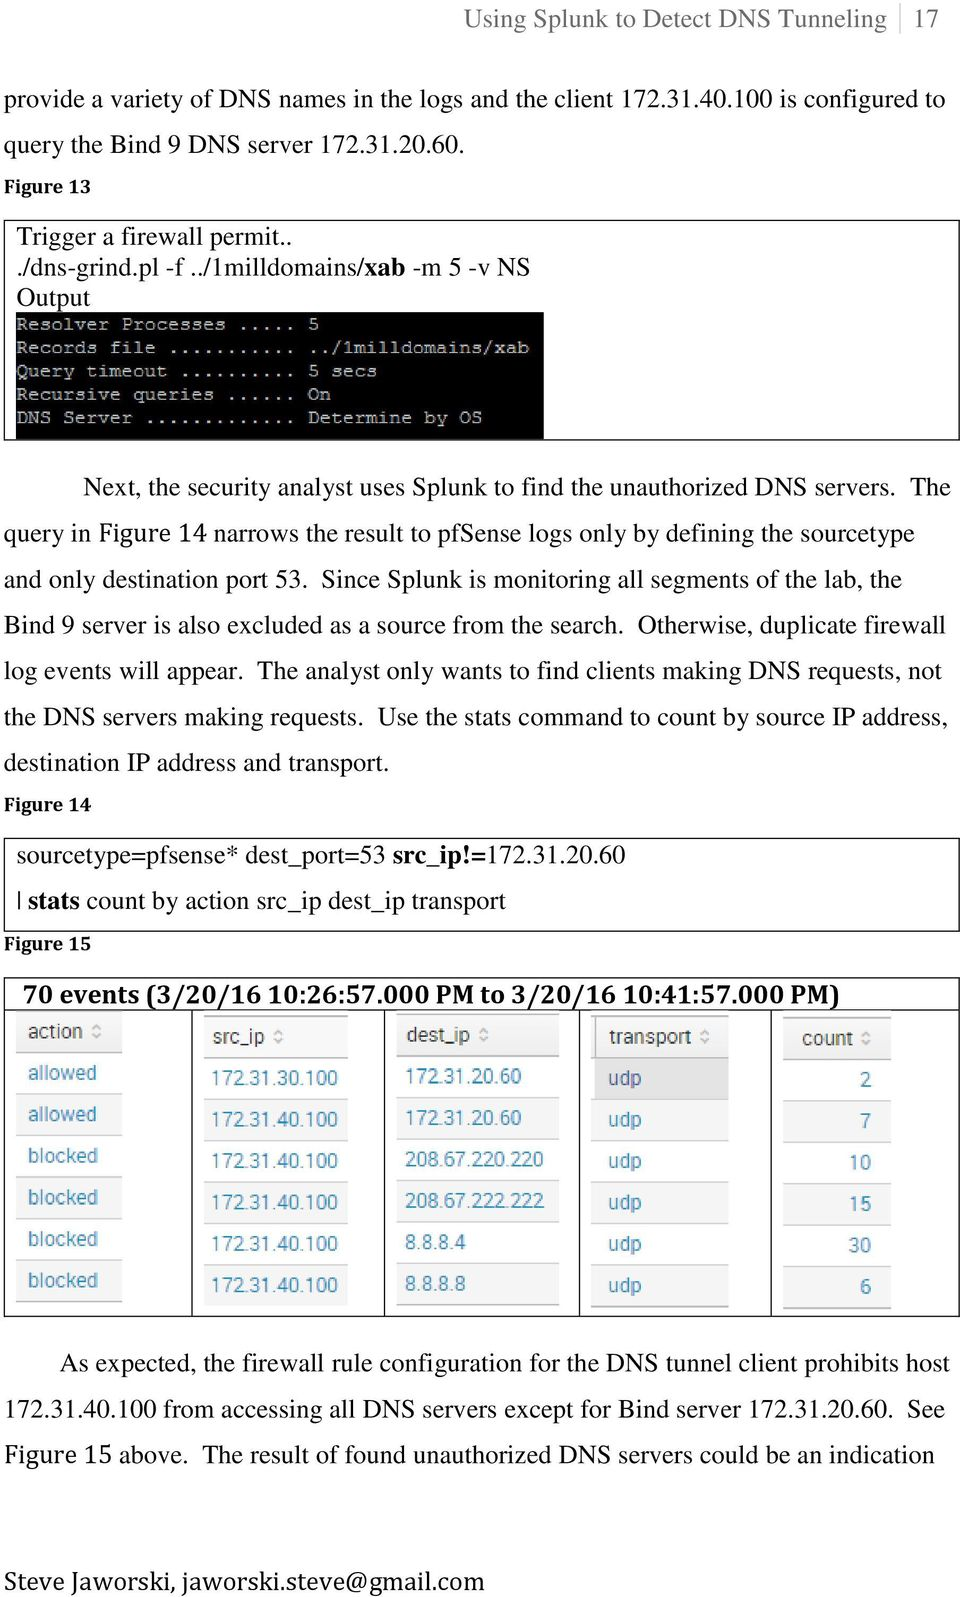 Interested in learning more about security? Using Splunk to